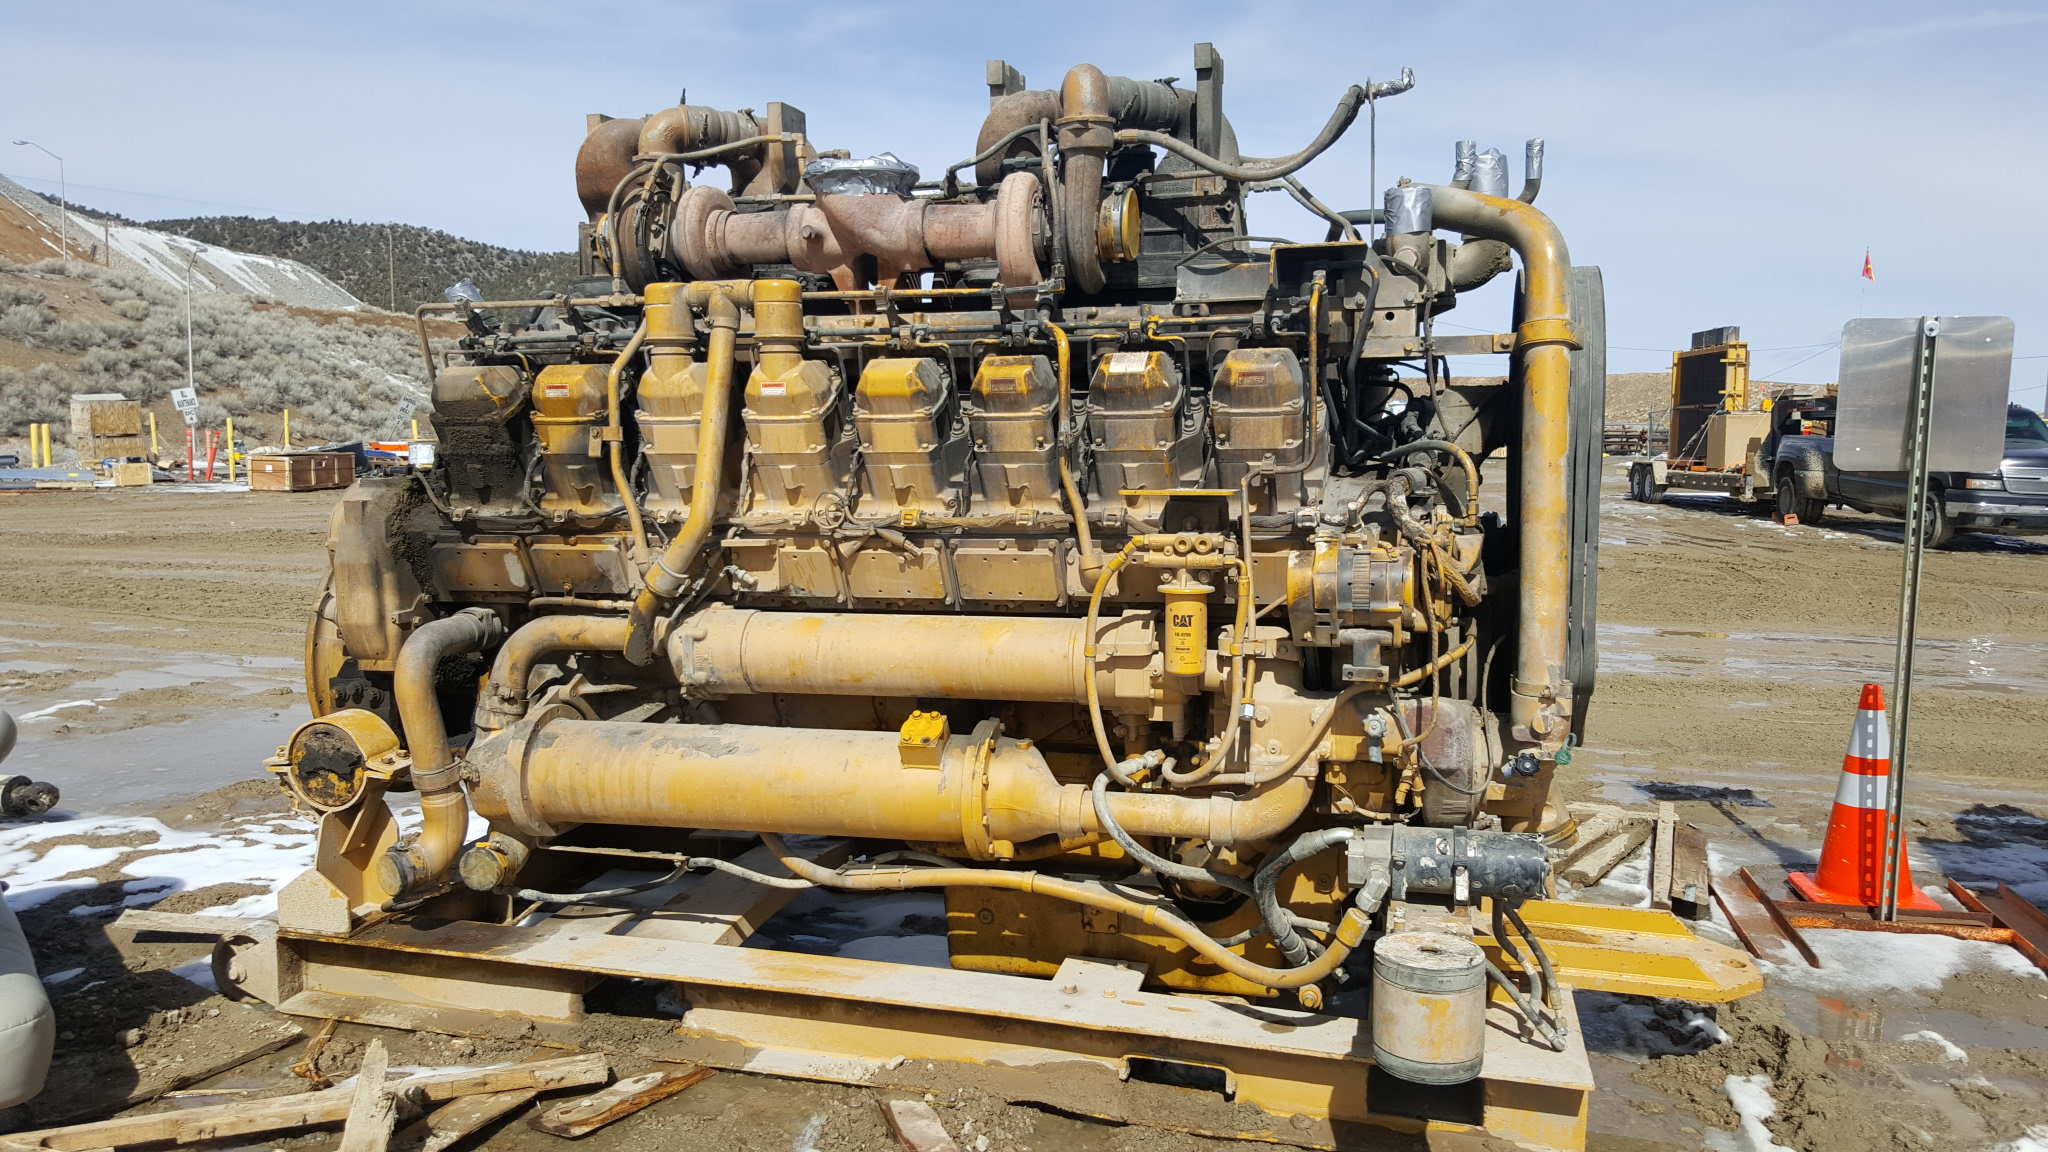 Caterpillar 3516 V16 3500 Series 793 Haul Truck Mining Diesel Engine